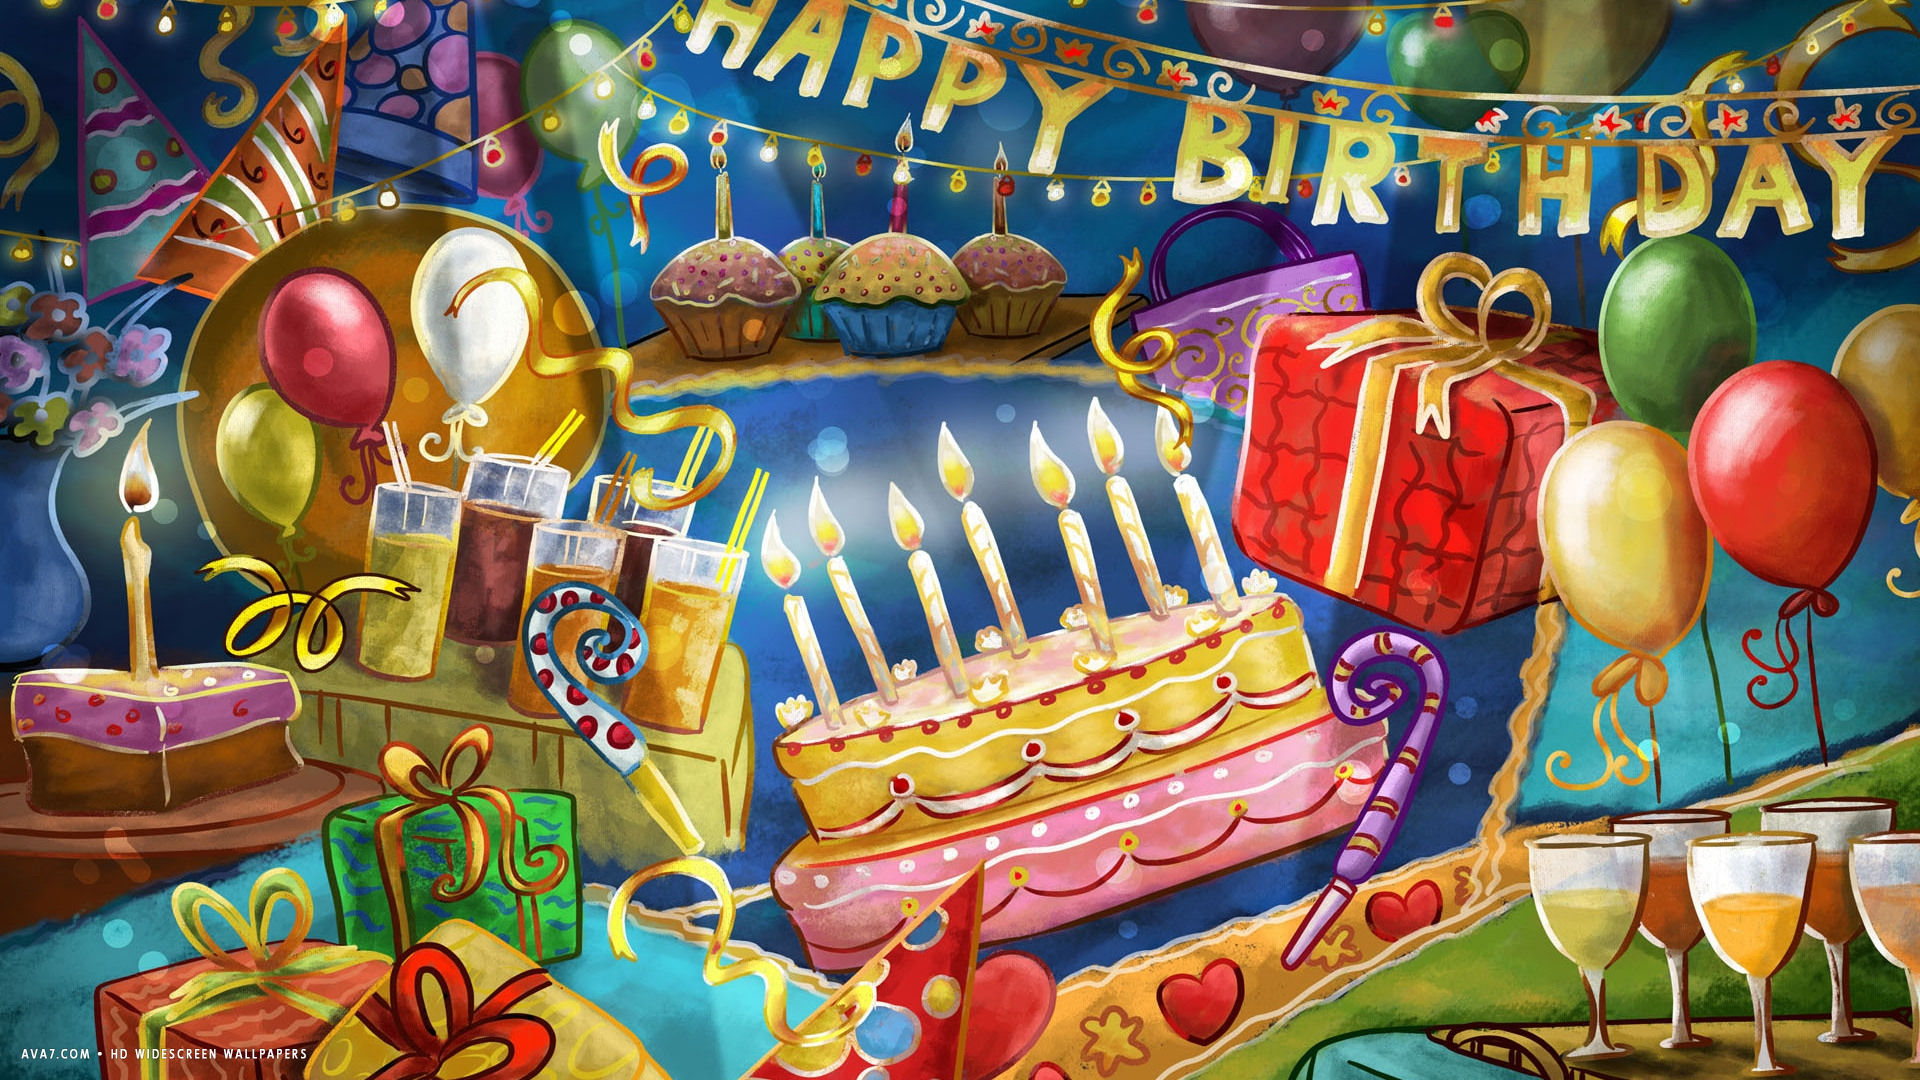 birthday party wallpaper ; happy-birthday-party-cake-candles-confetti-balloons-party